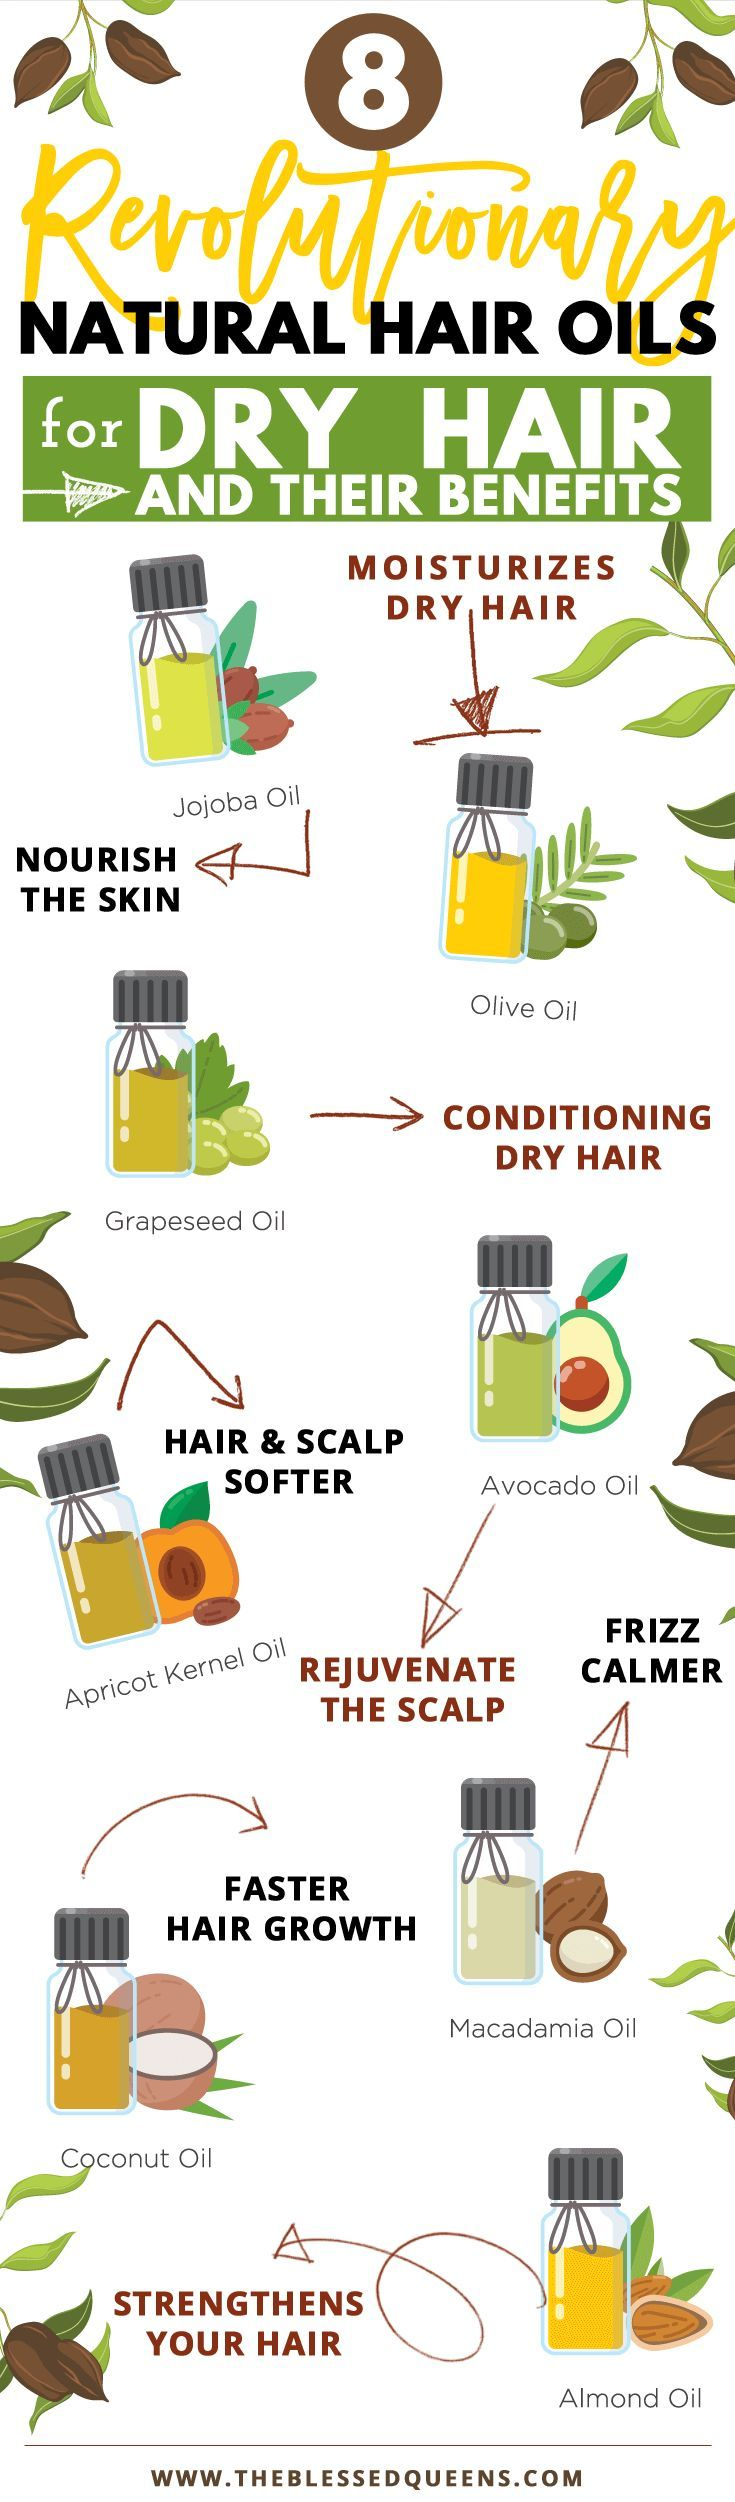 8 Revolutionary Natural Hair Oils for Dry Hair & Their Benefits #naturalhairupdo